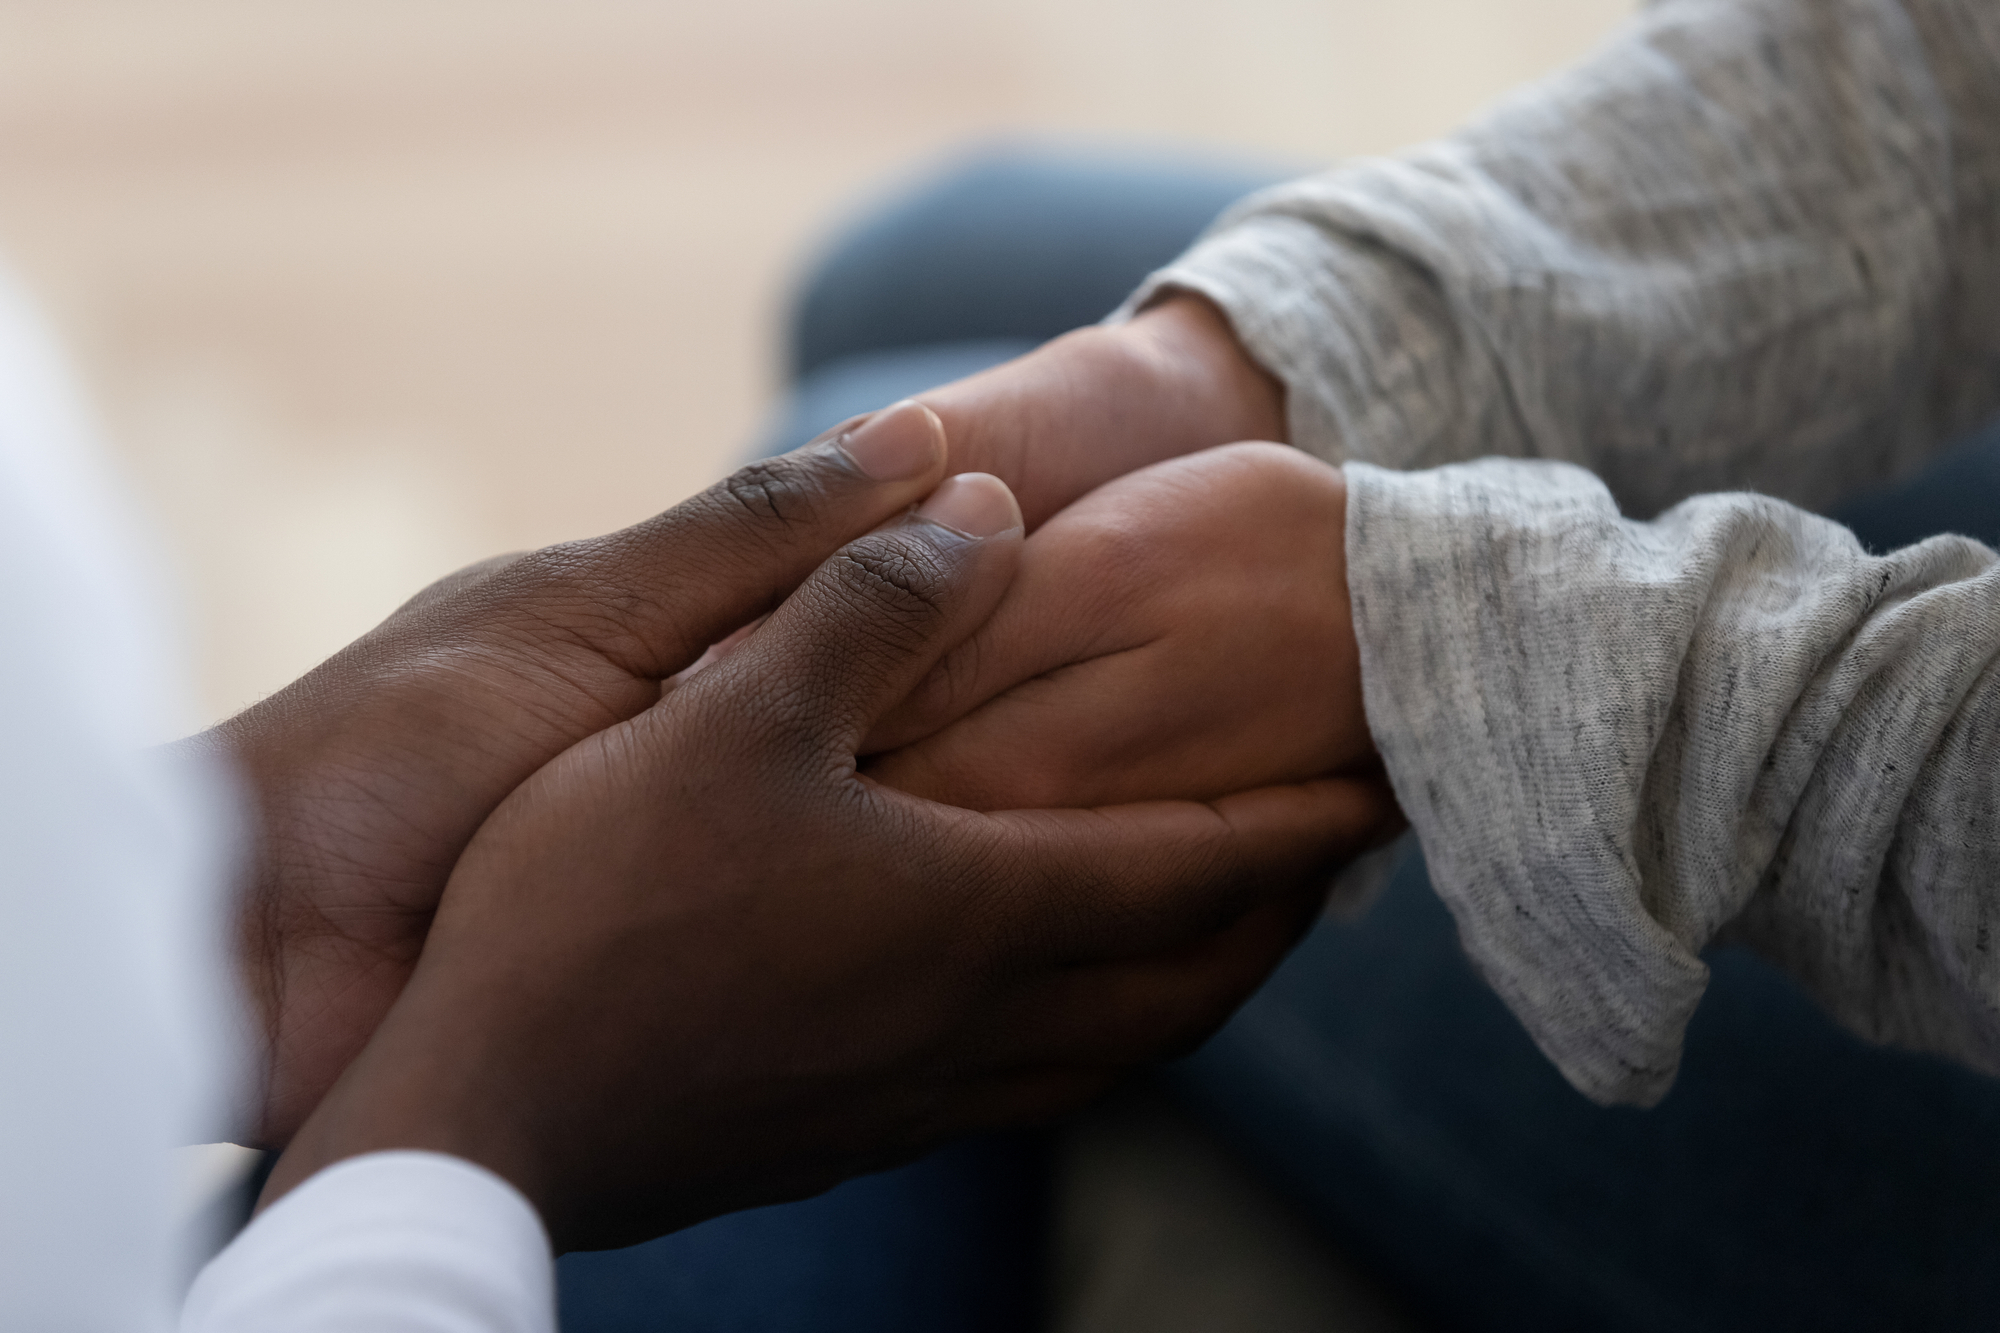 Mixed ethnicity family couple holding hands express support in marriage